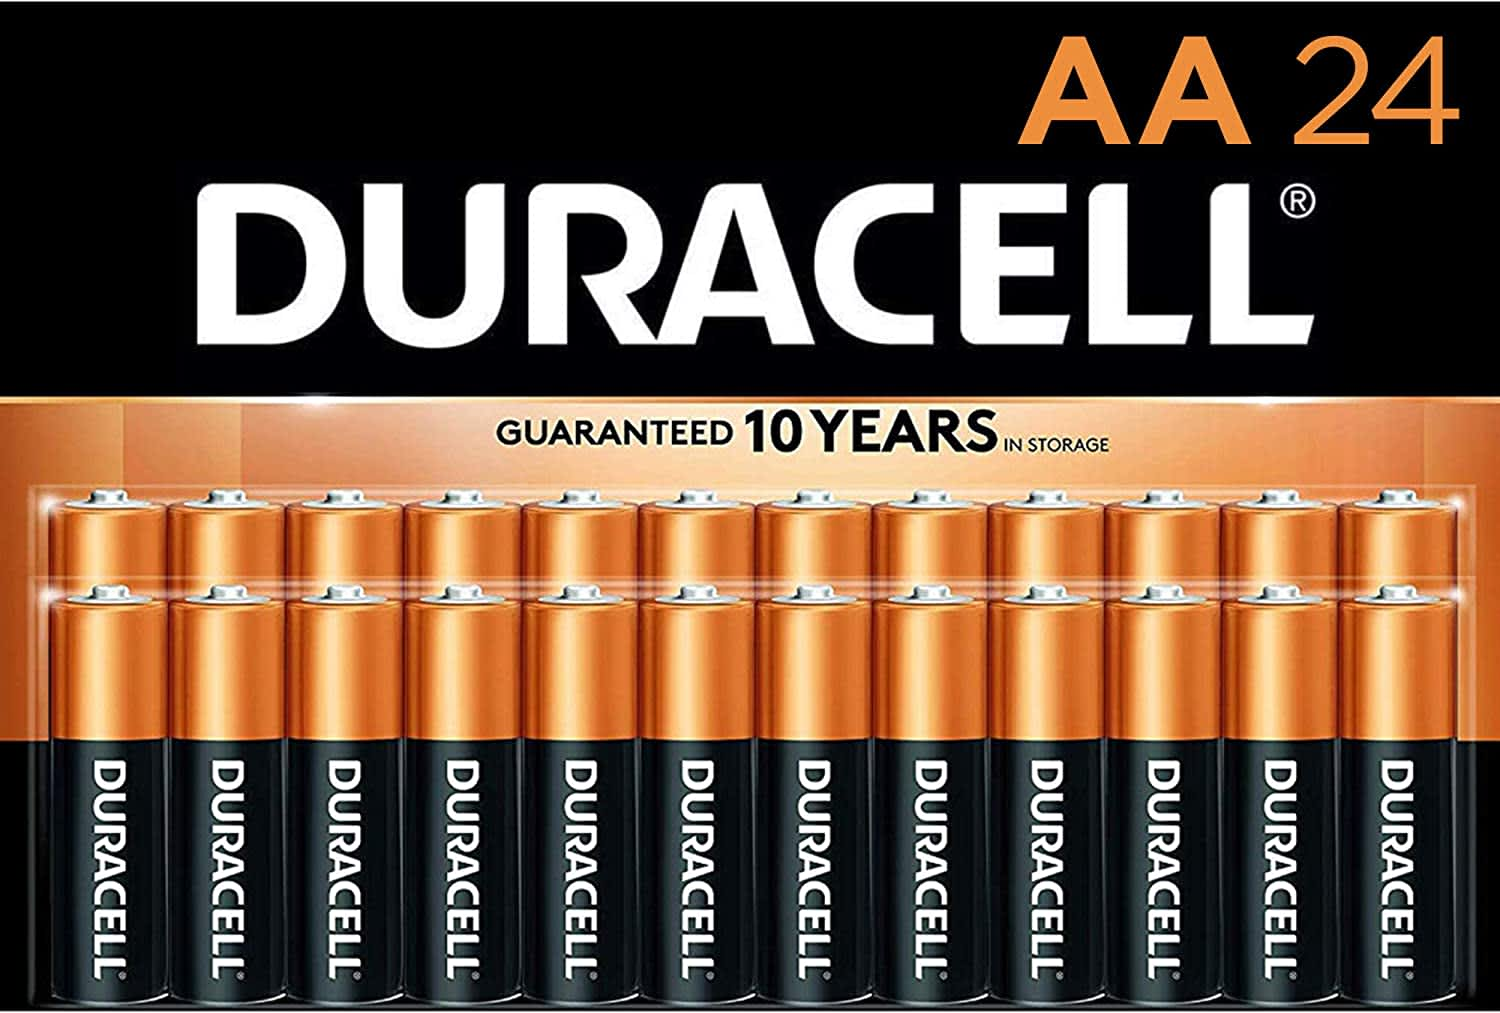 Duracell CopperTop AA Alkaline Batteries 24-Pack